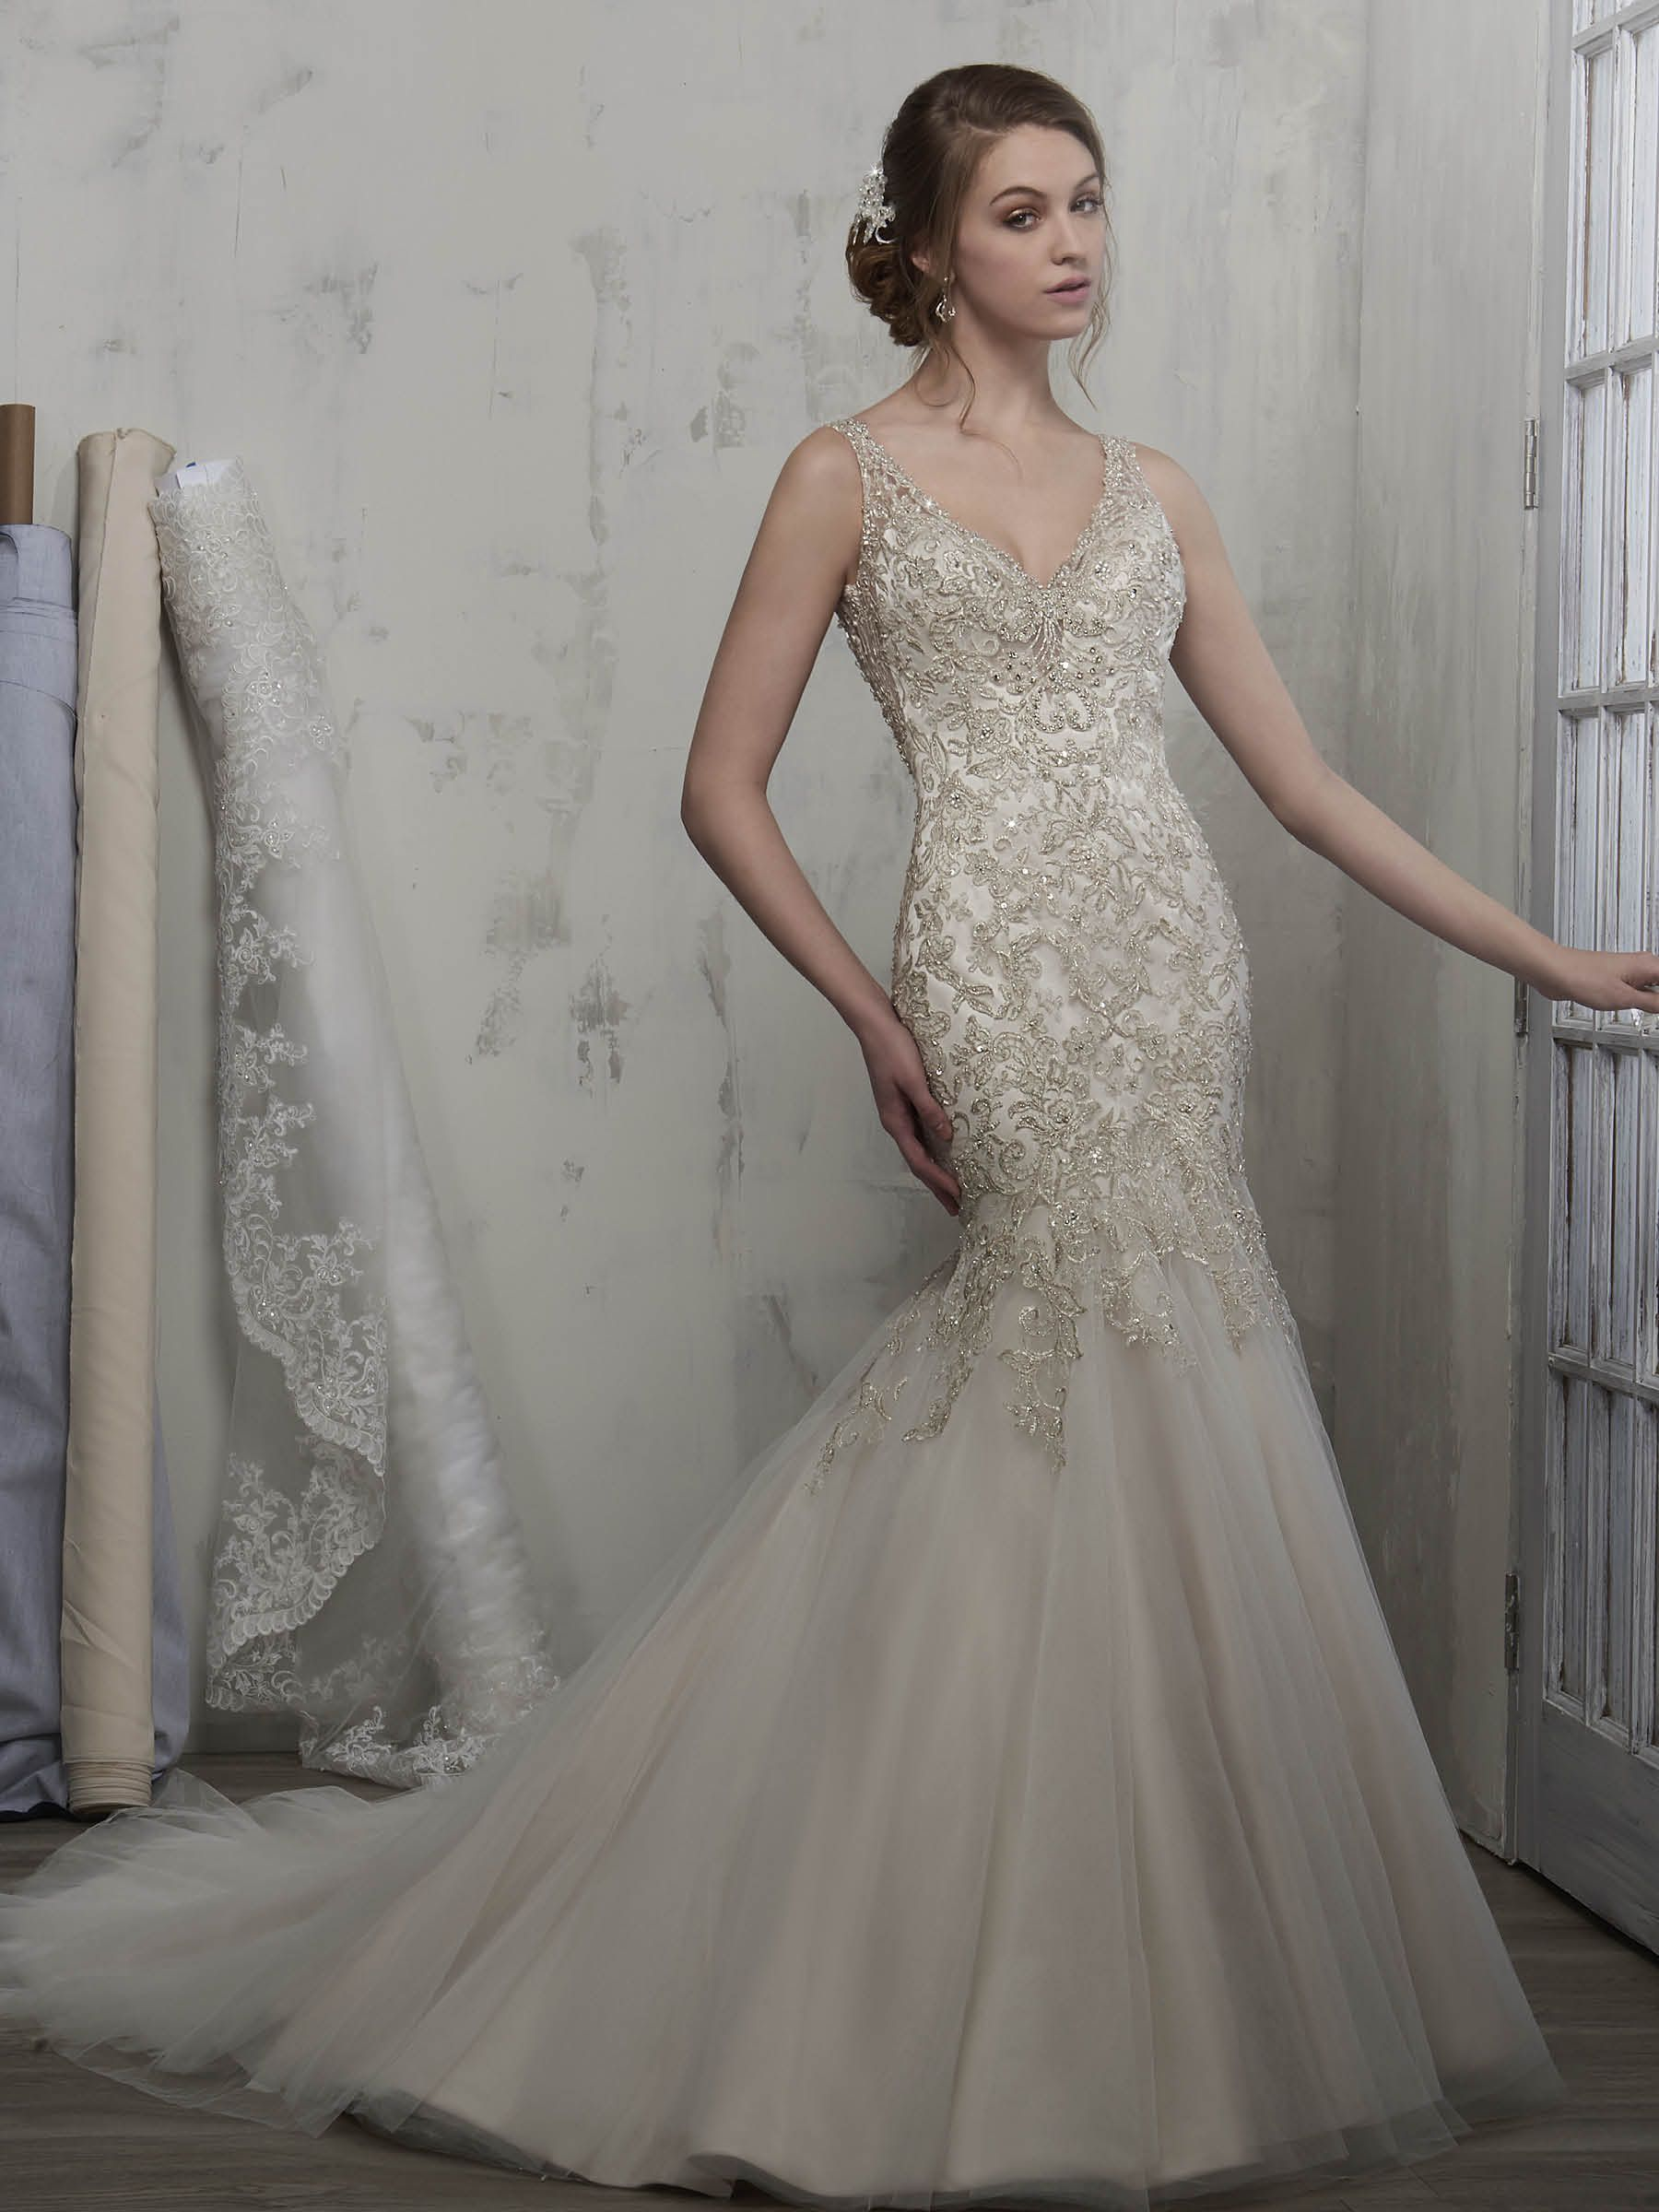 Couture Damour Bridal Dresses | Couture d'Amour | Style ...